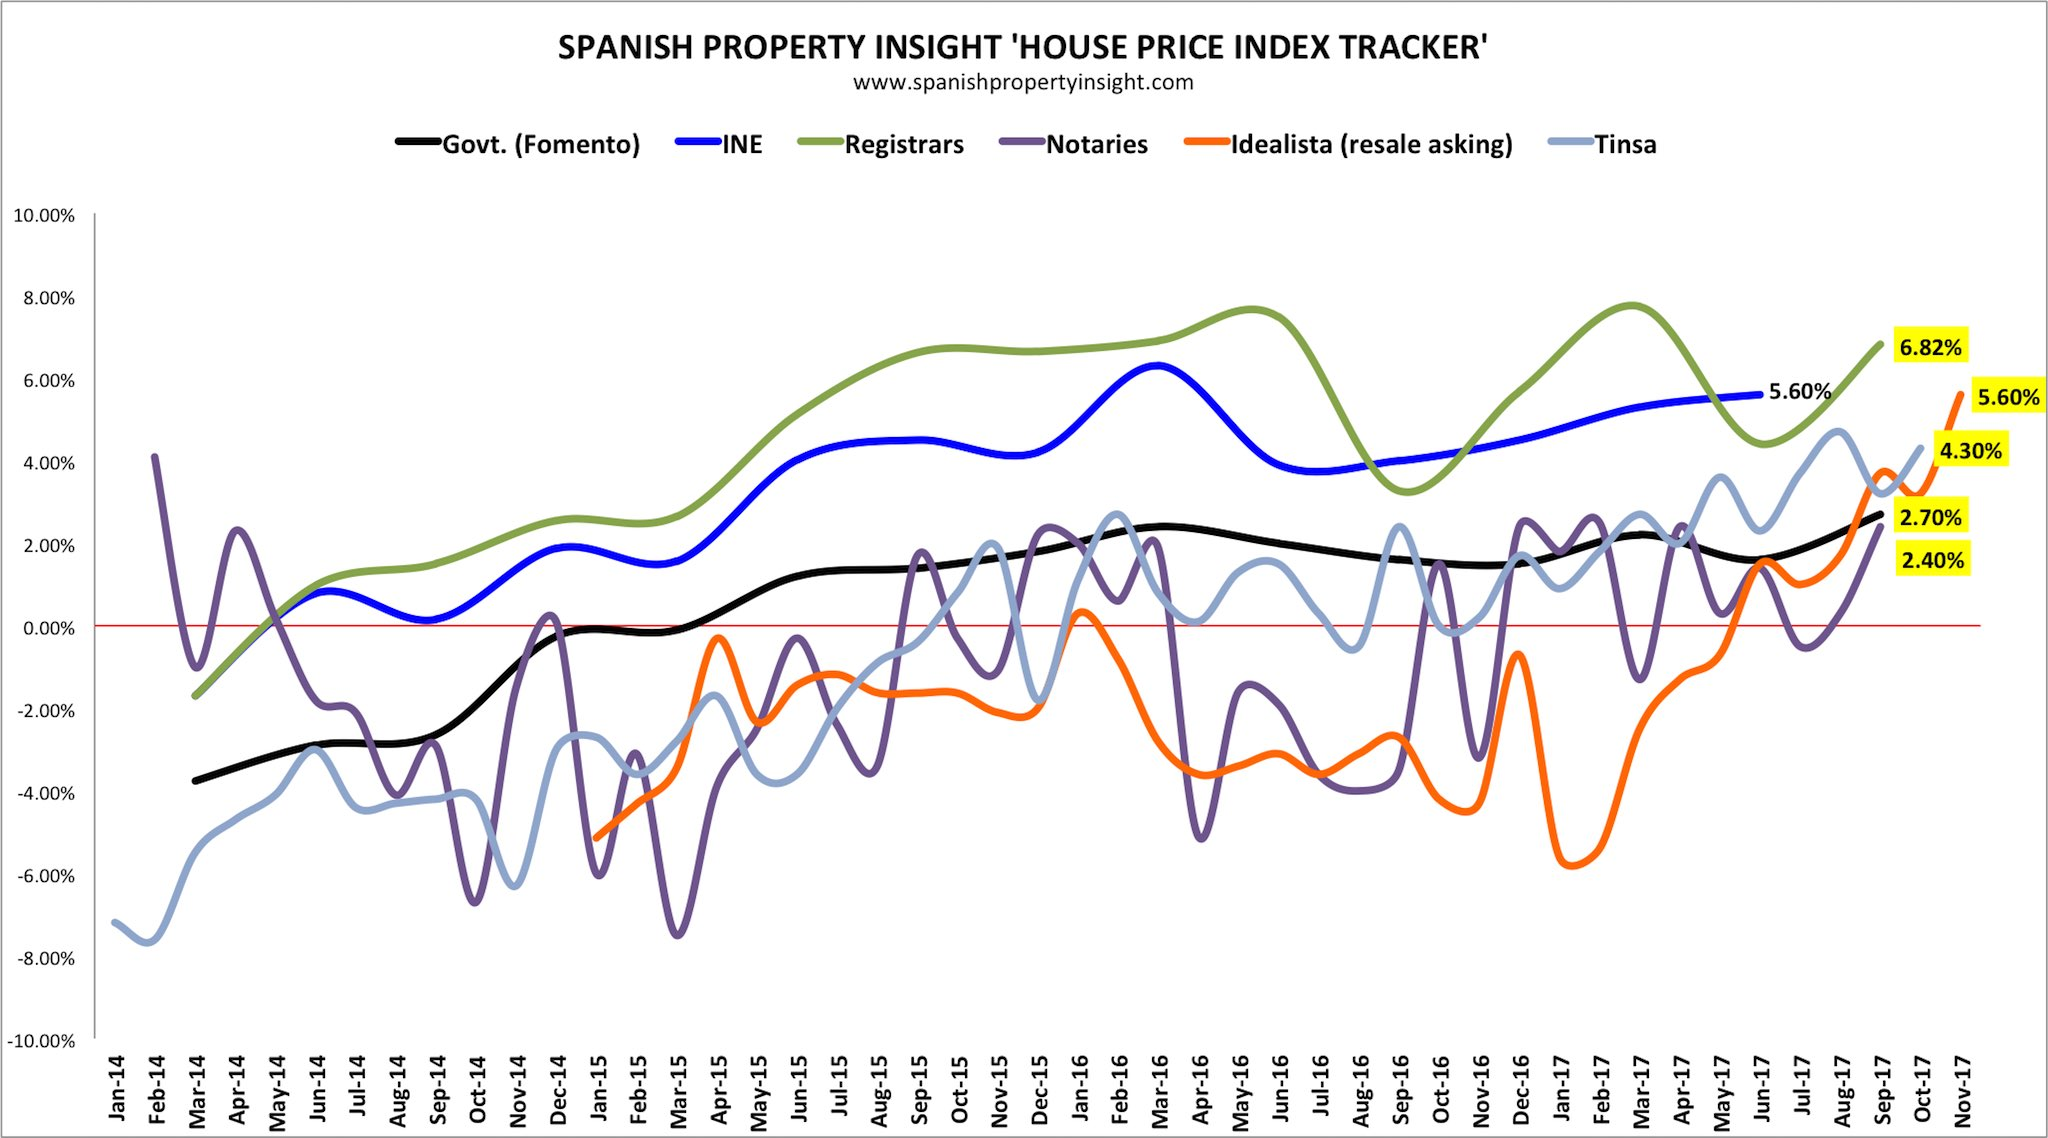 Spanish house price data published in November 2017 on